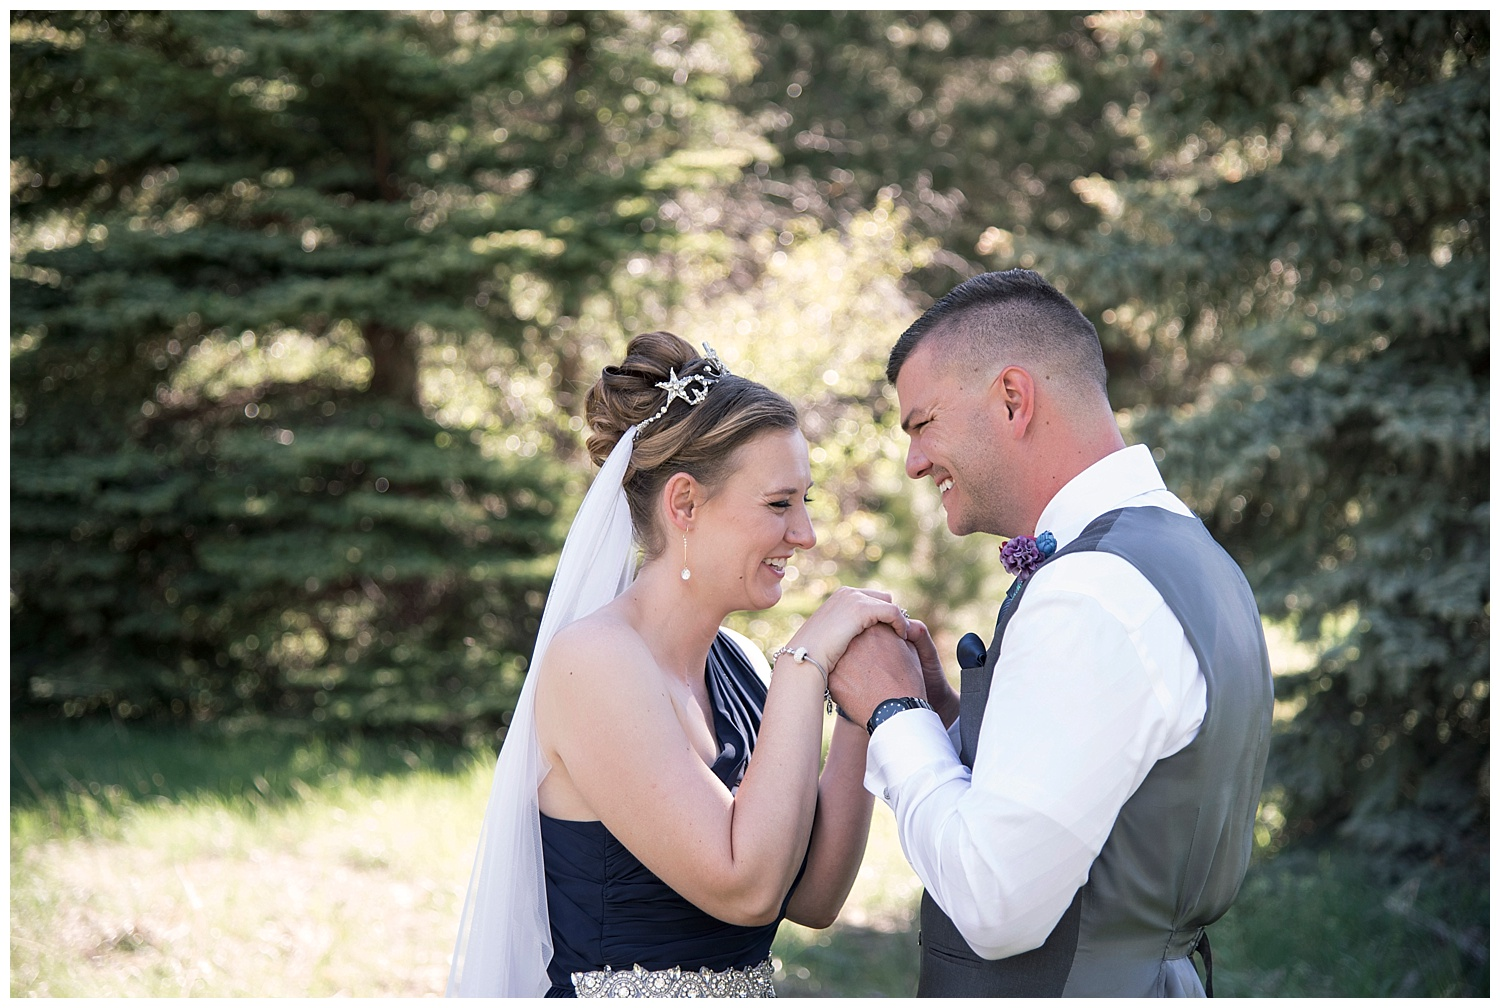 Adventure_Colorado_Wedding_Photographer_Intimate_Weddings_Photography_038.jpg